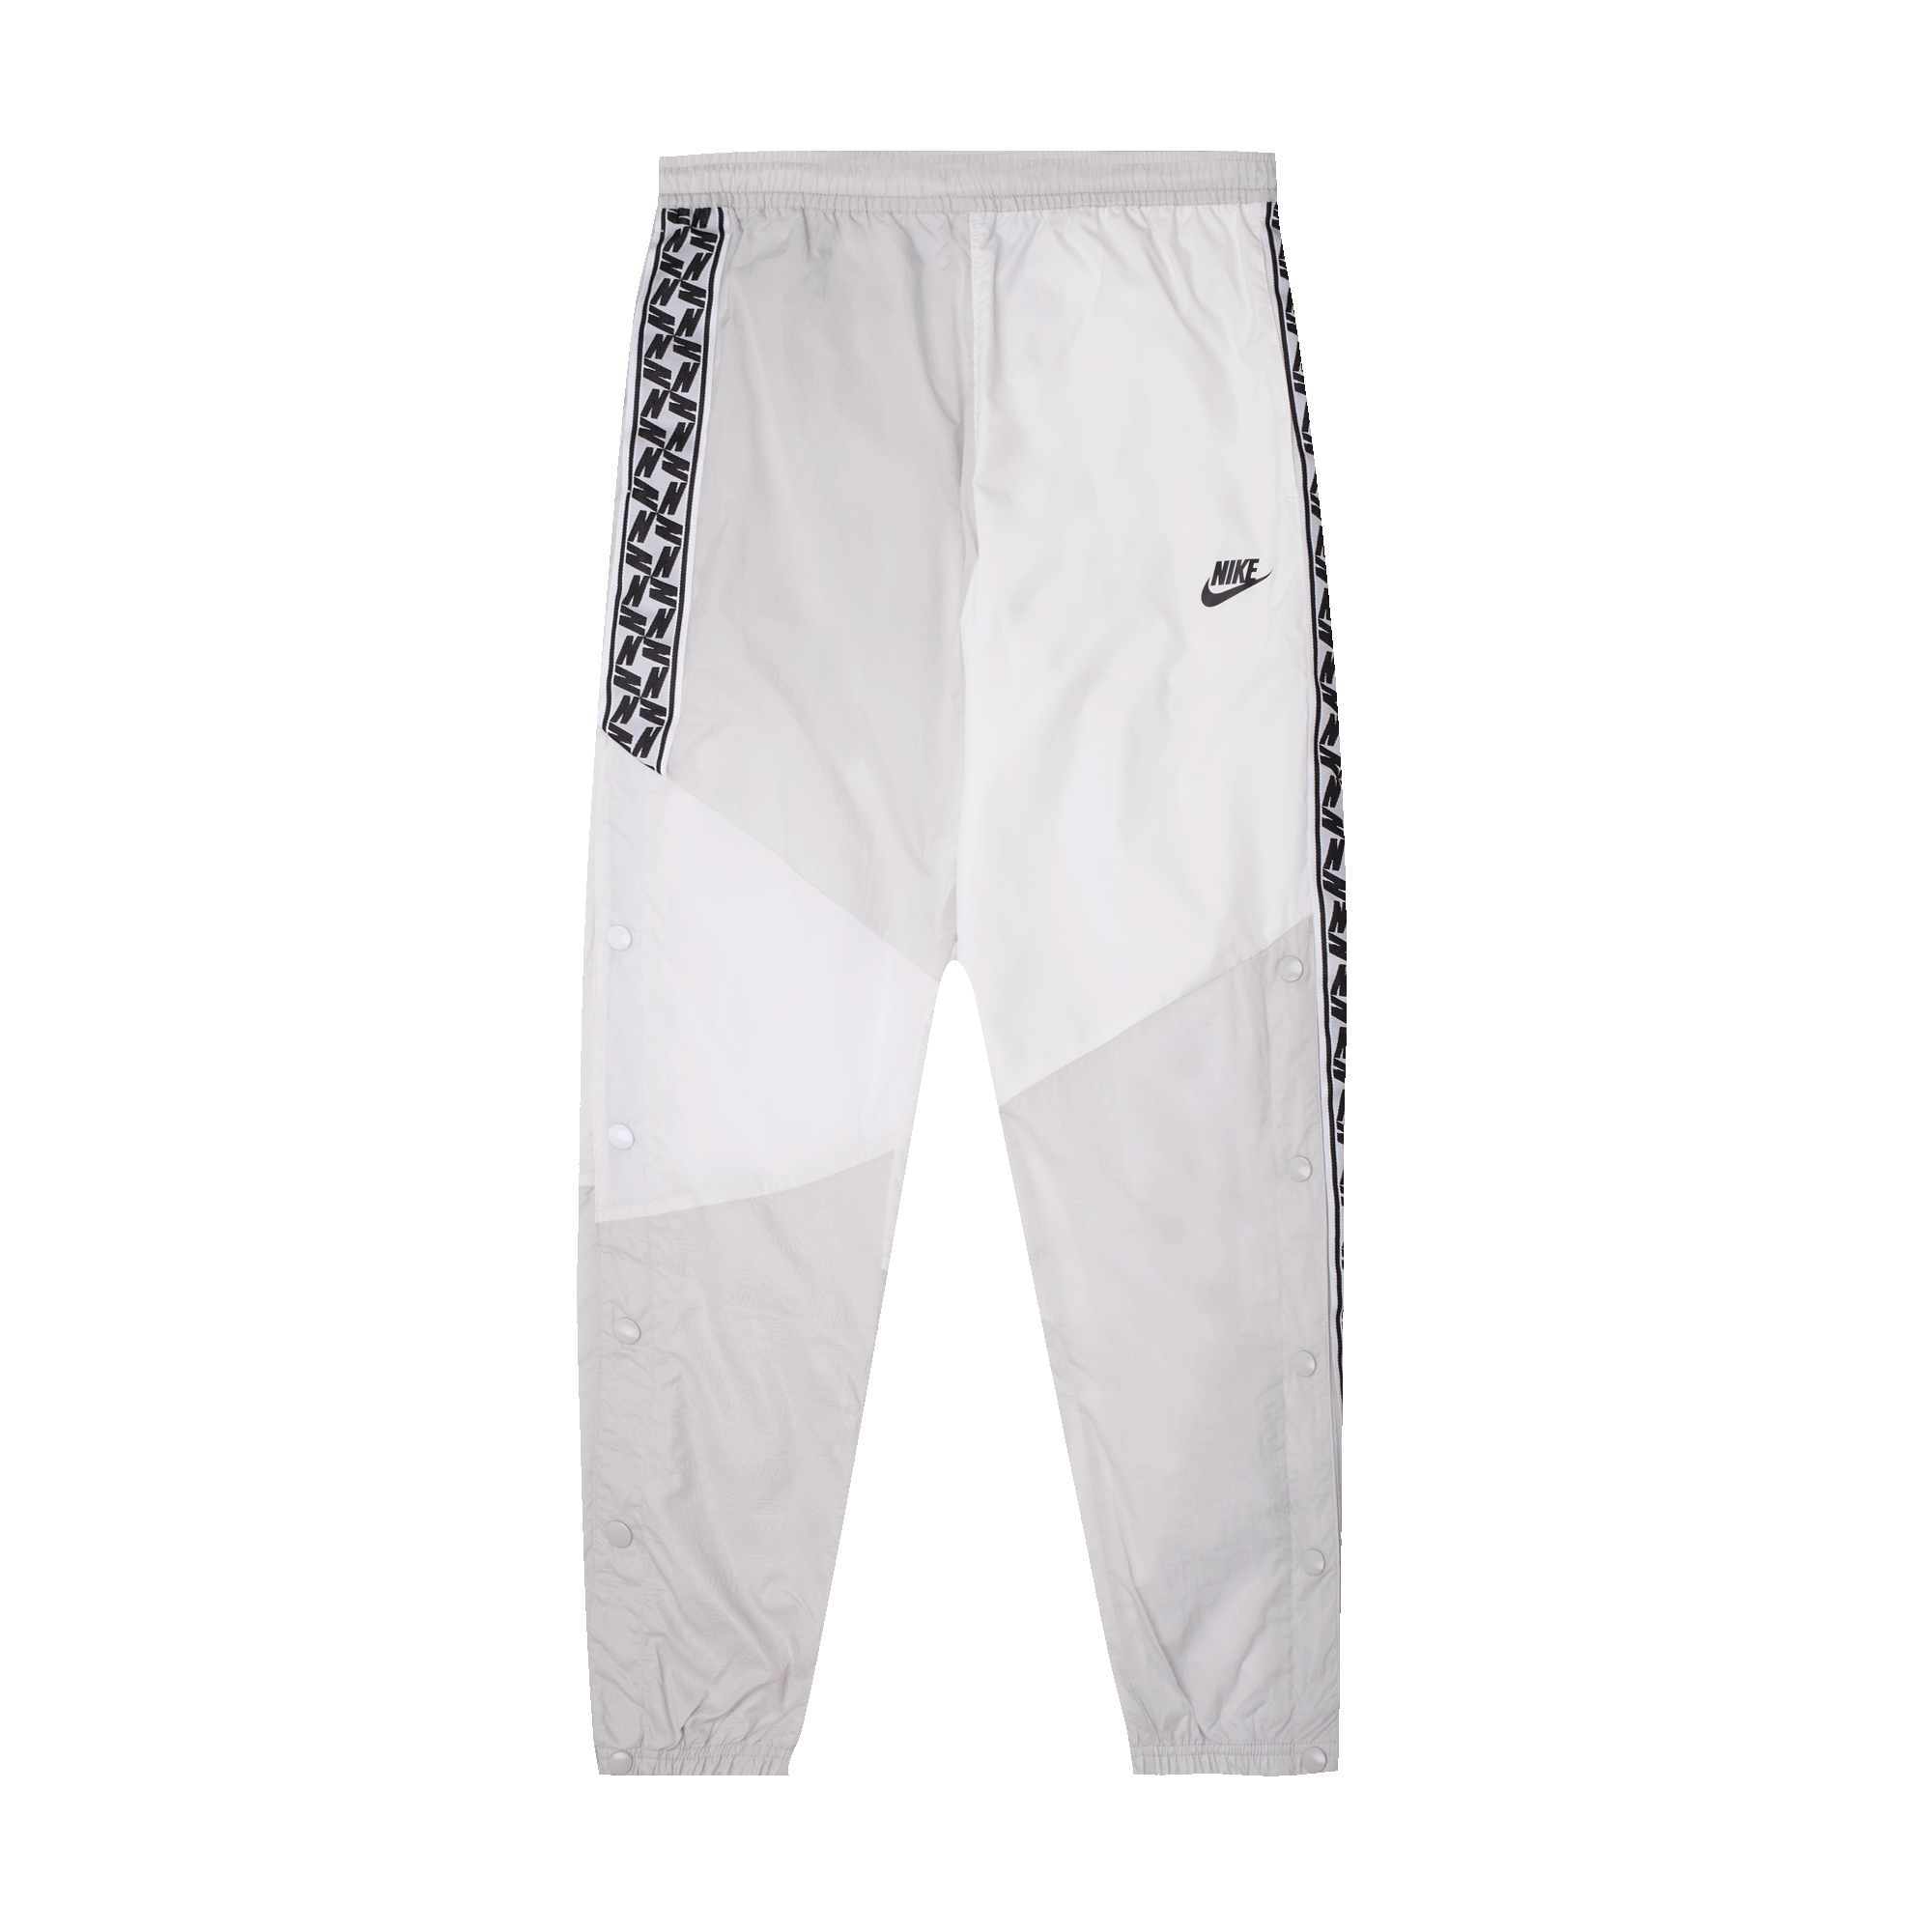 Nike NSW Taped Woven Pant sailwhite Pants |